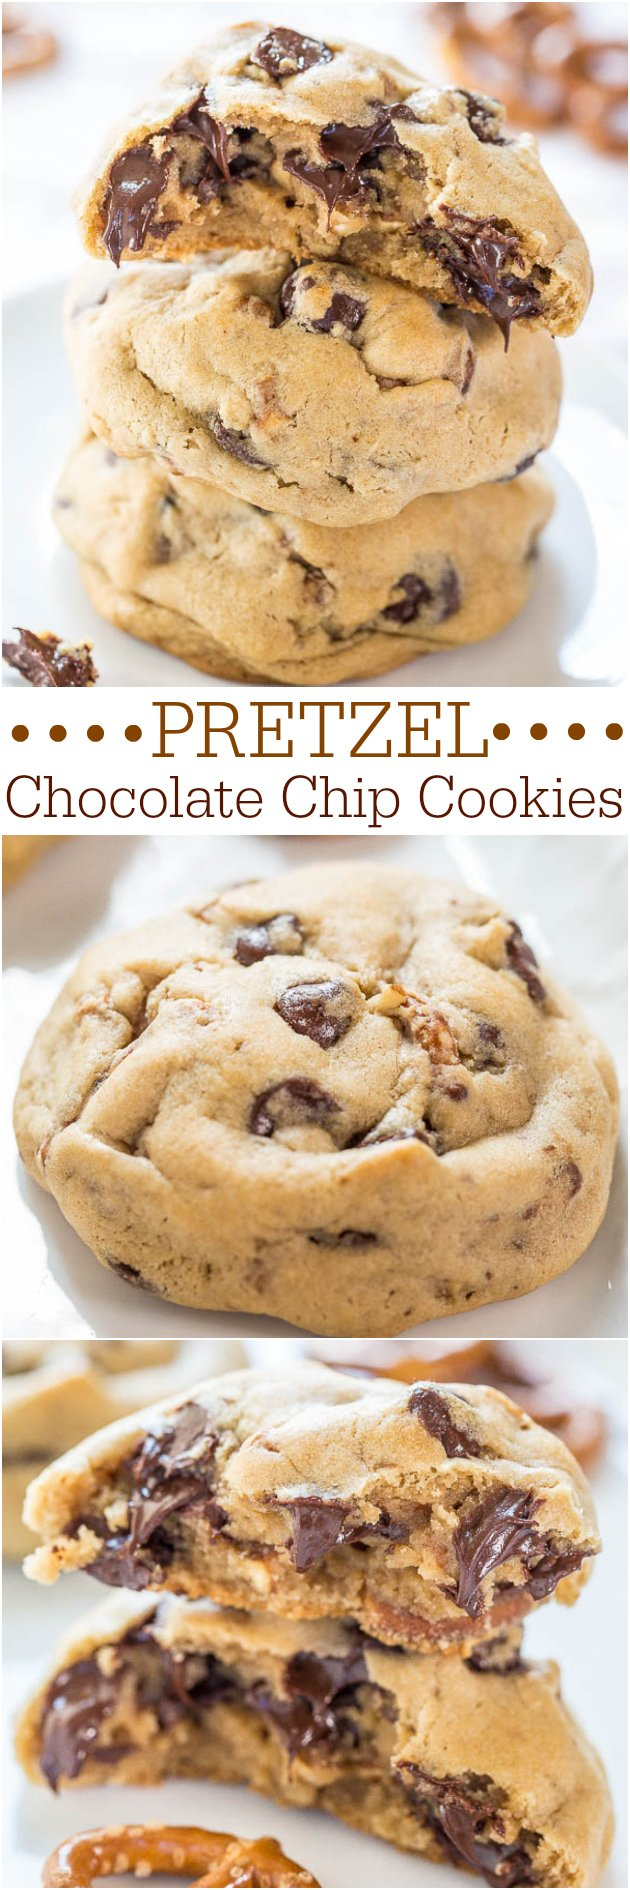 Chocolate Chip PretzelCookies — Soft chocolate chip cookies packed with chocolate chips and crunchy pretzels!! Salty-and-sweet all in one!!